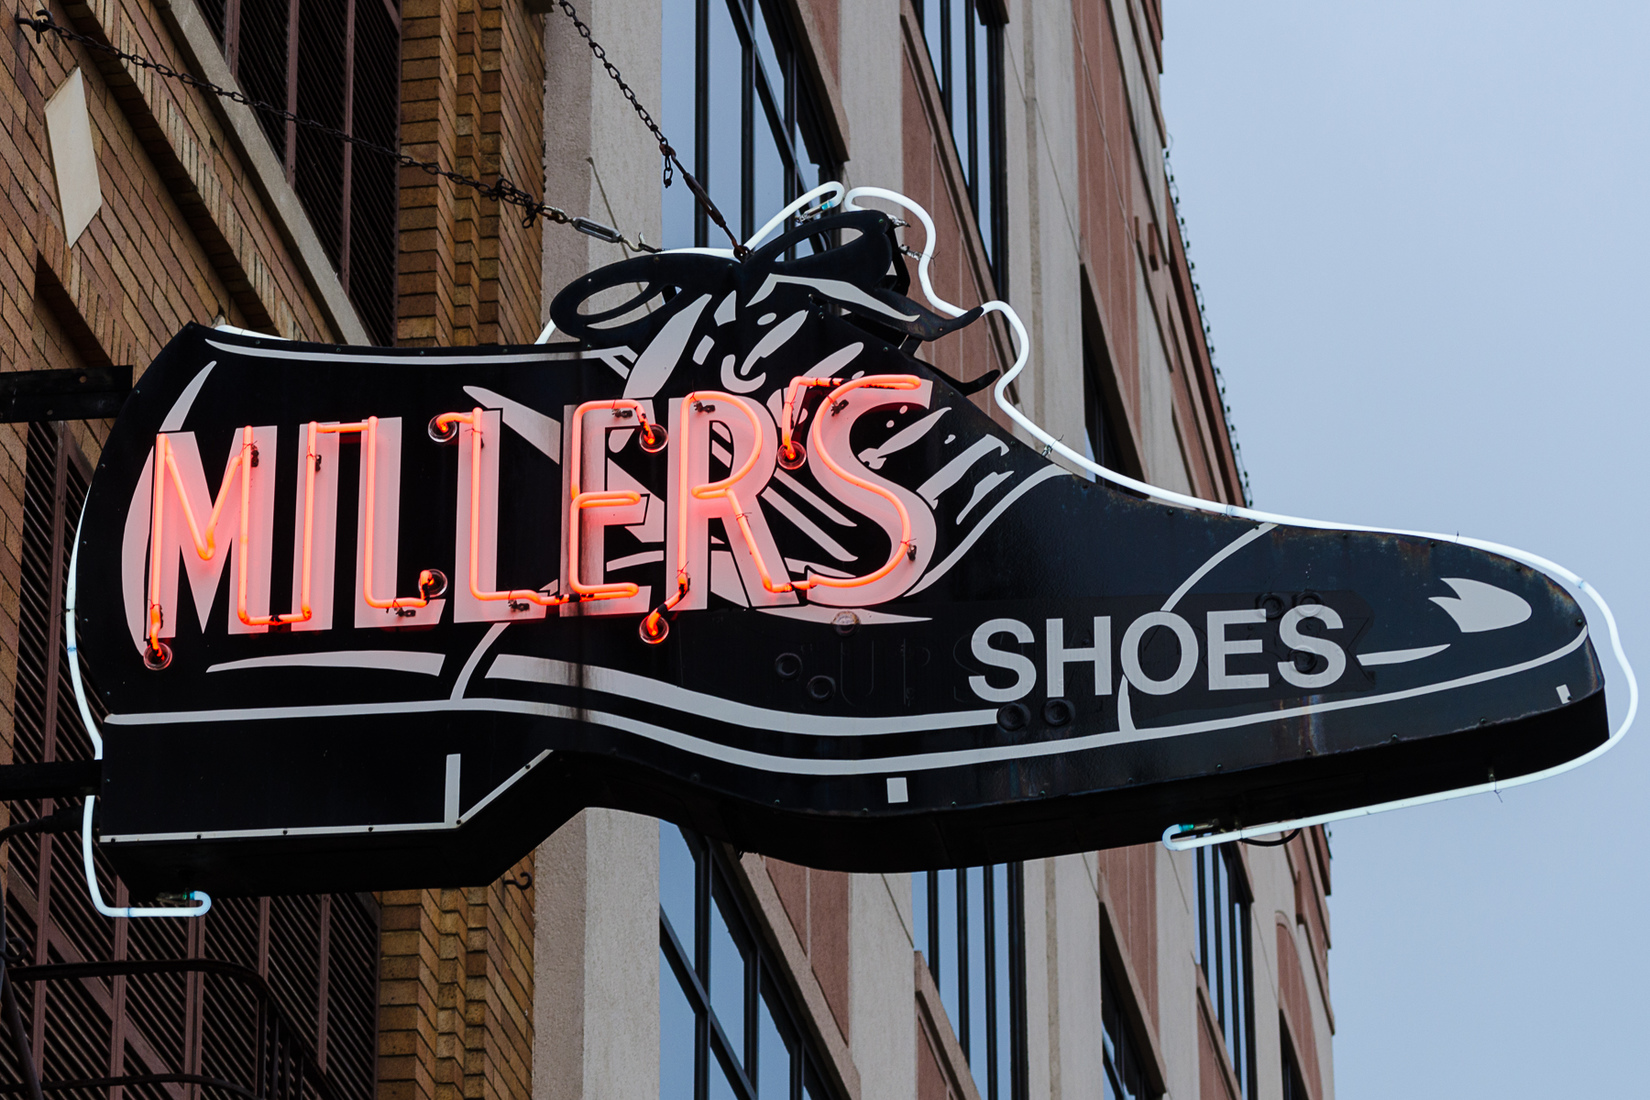 Neon Miller's Shoes - Jackson, Michigan